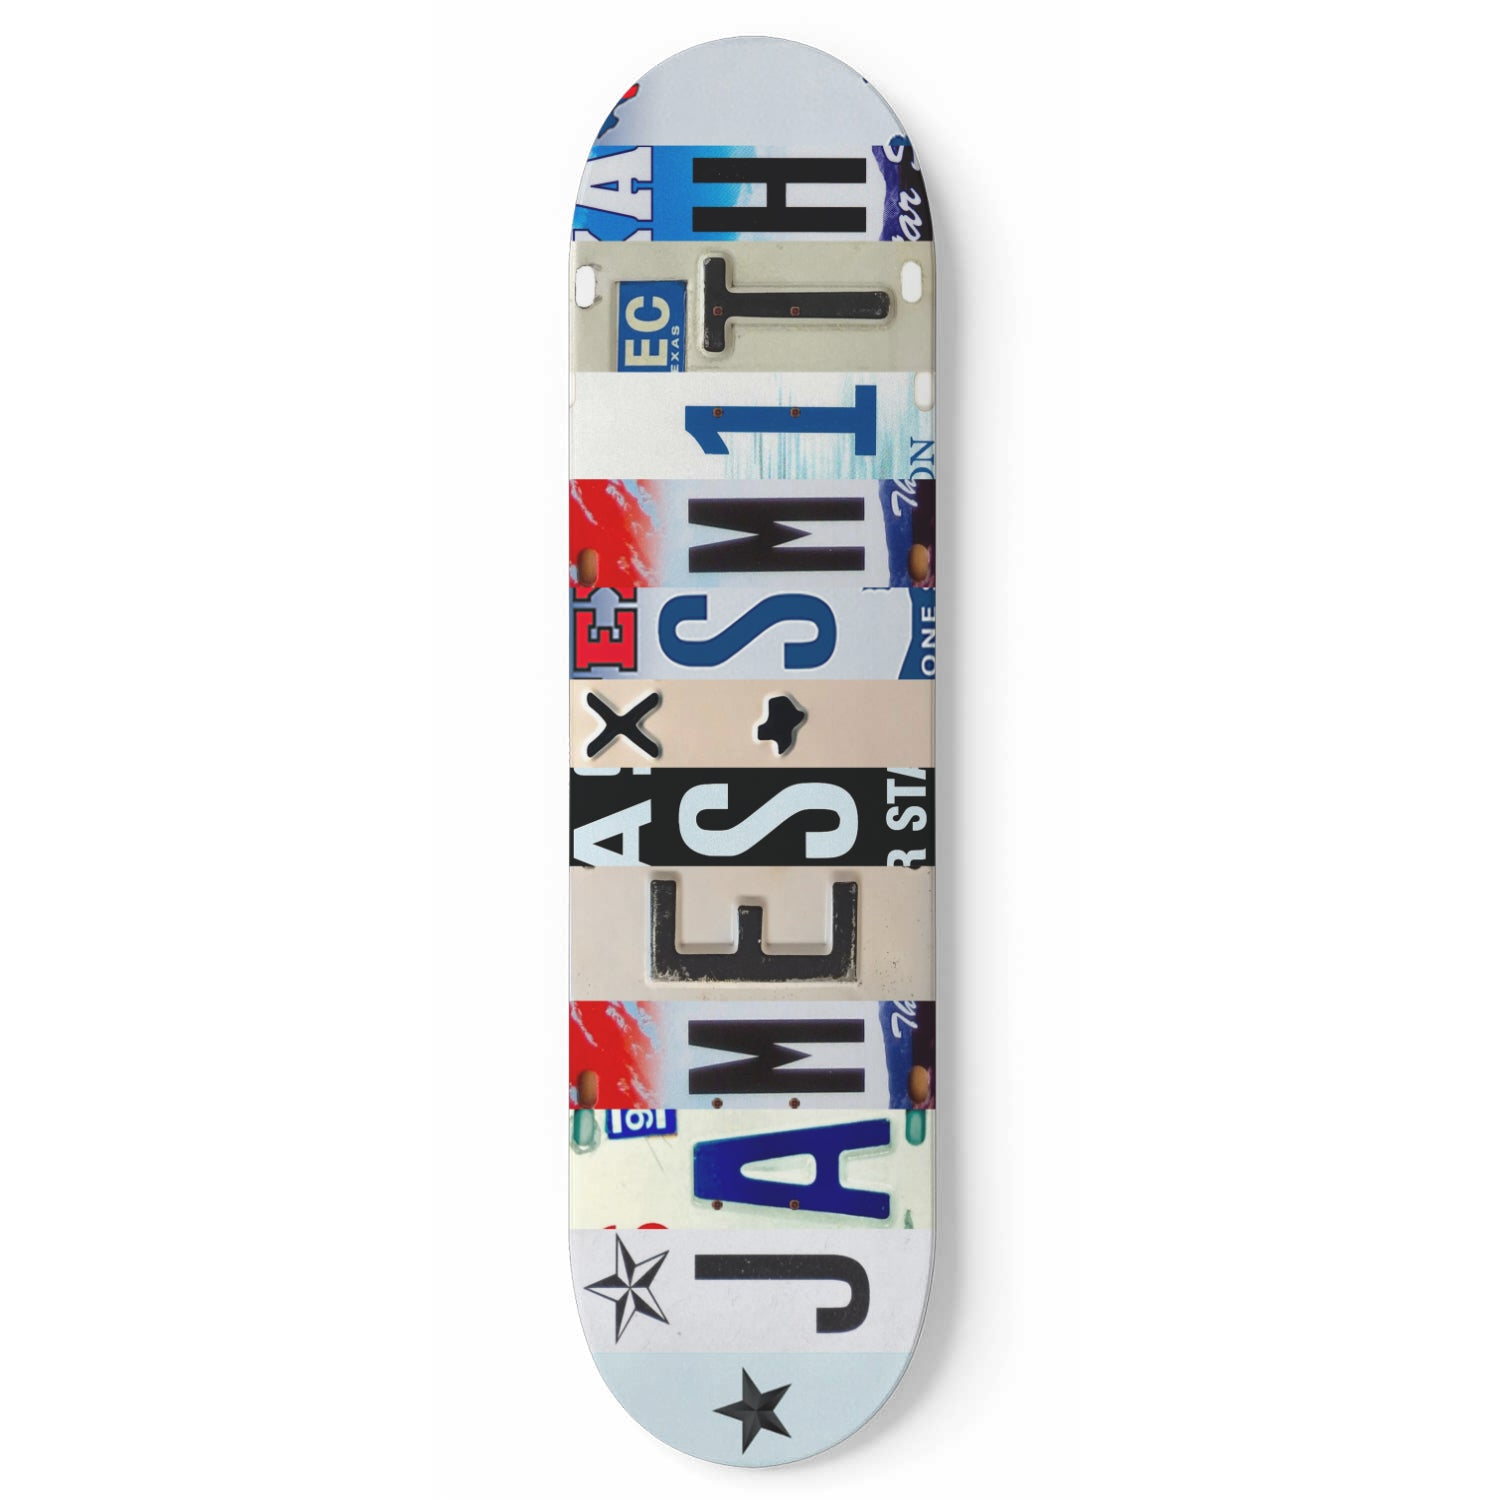 Personalized Skateboard Texas License Plate Design